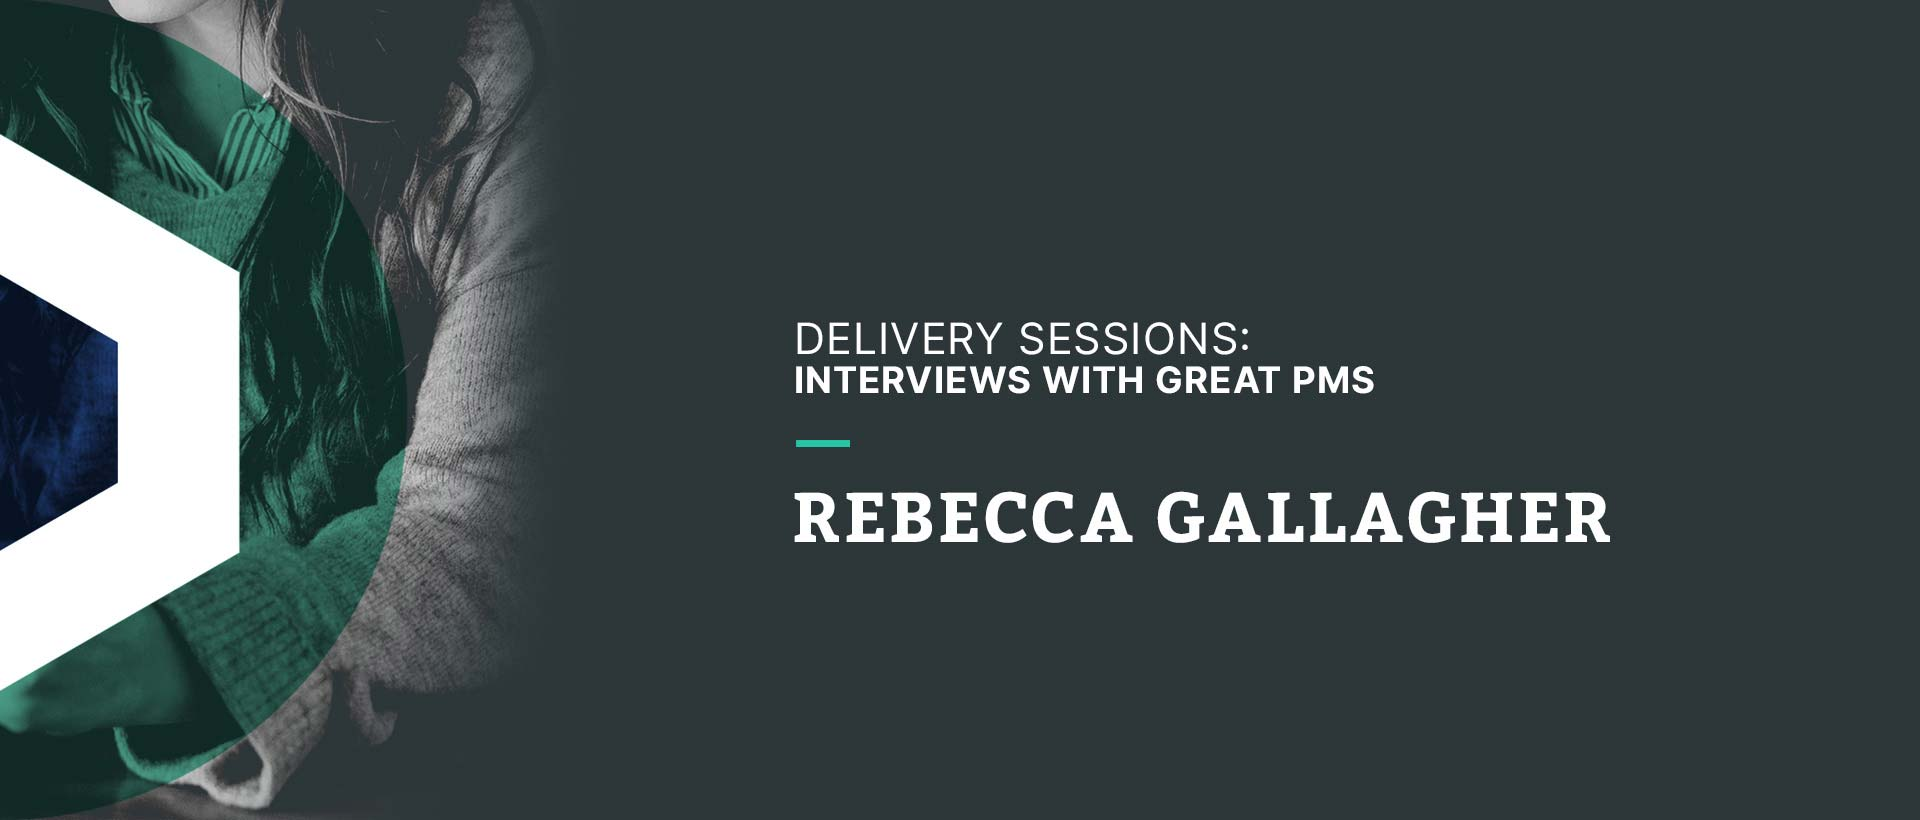 Delivery Sessions: Interviews with Great PMs (Rebecca Gallagher)